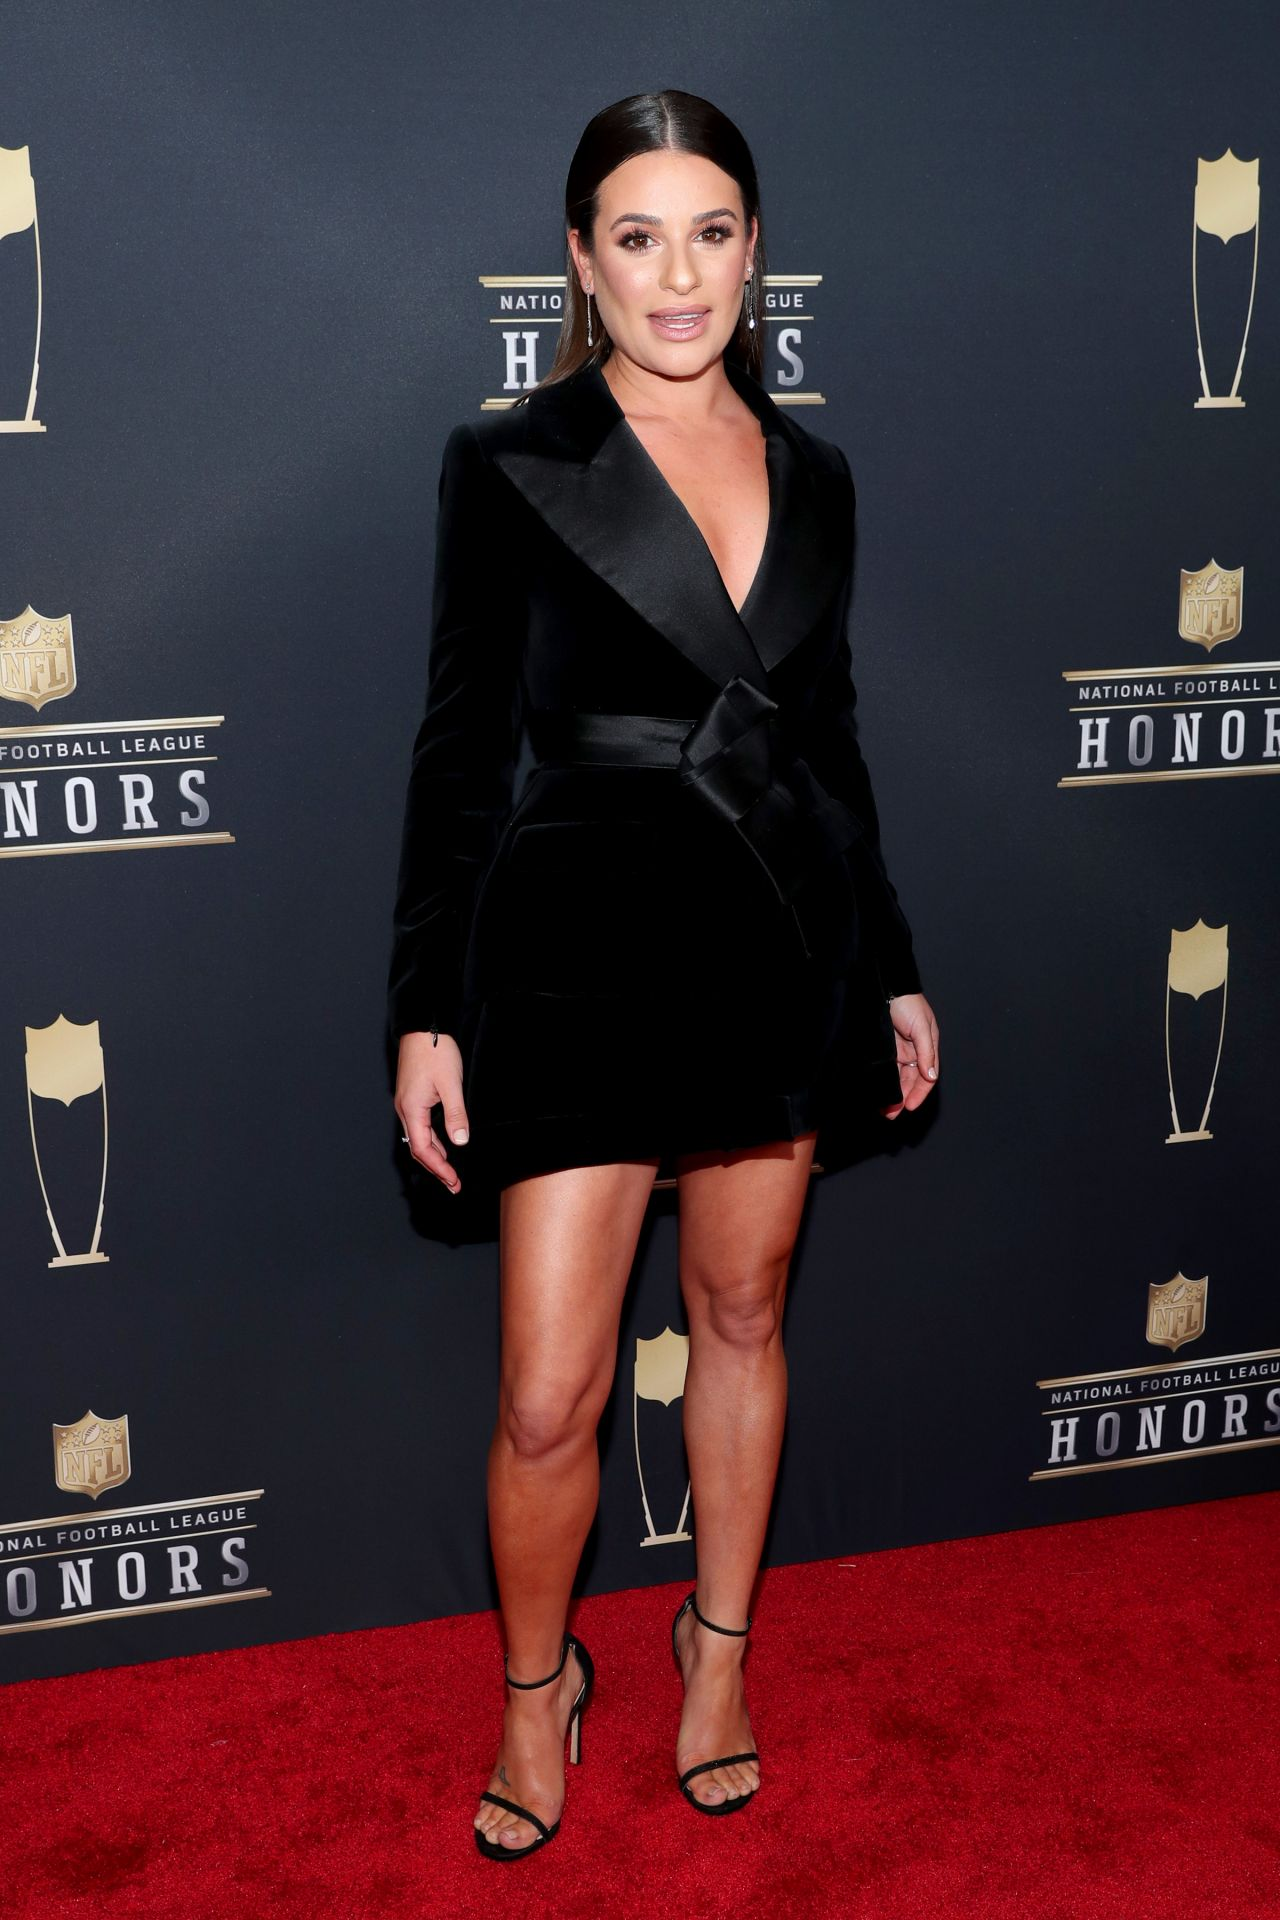 http://celebmafia.com/wp-content/uploads/2018/02/lea-michele-nfl-honors-at-university-of-minnesota-in-minneapolis-6.jpg